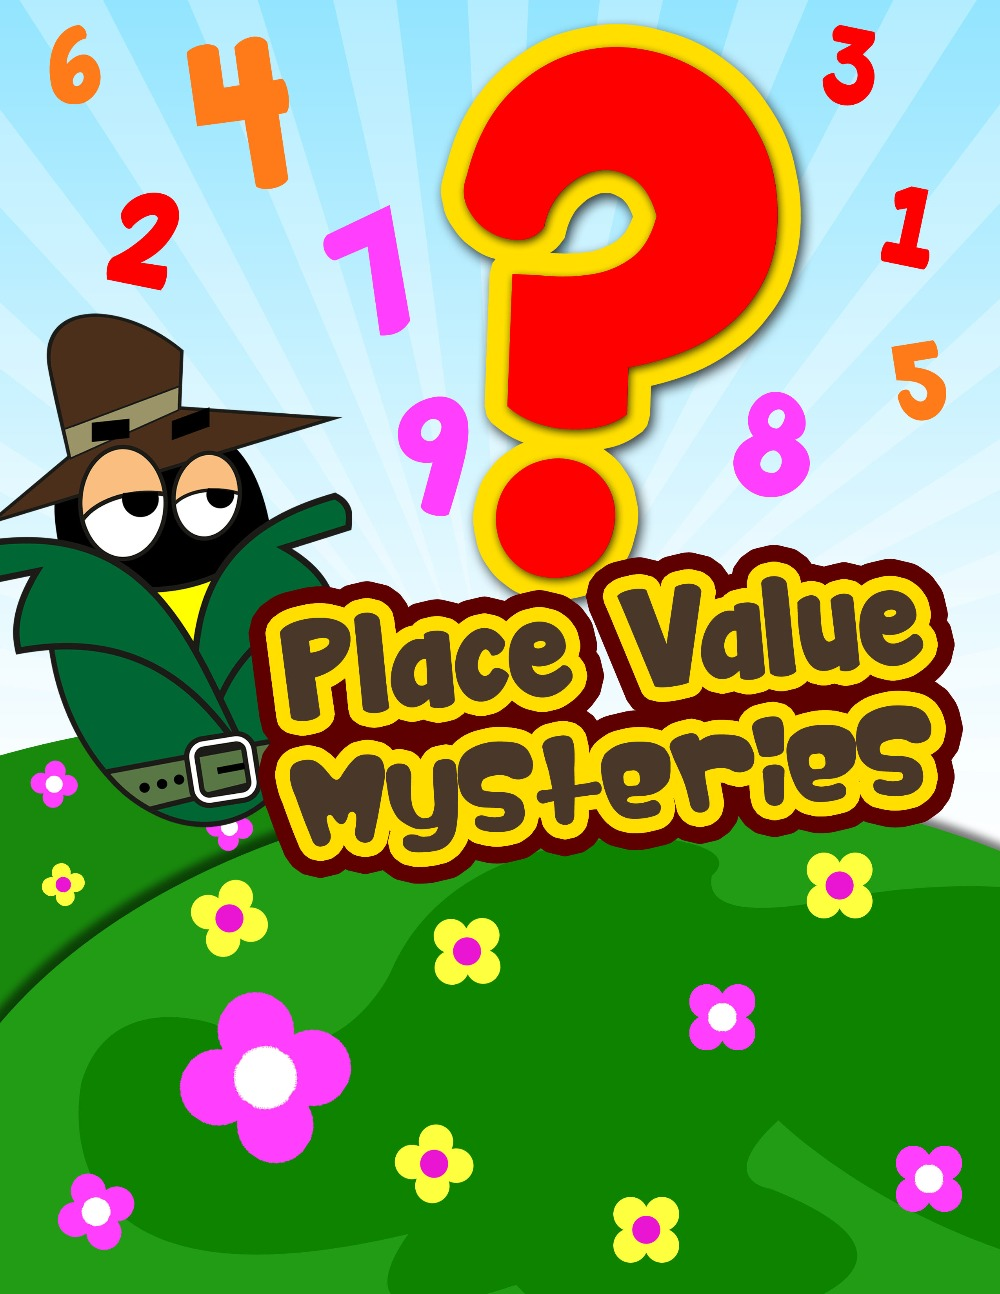 Place Value Mysteries: